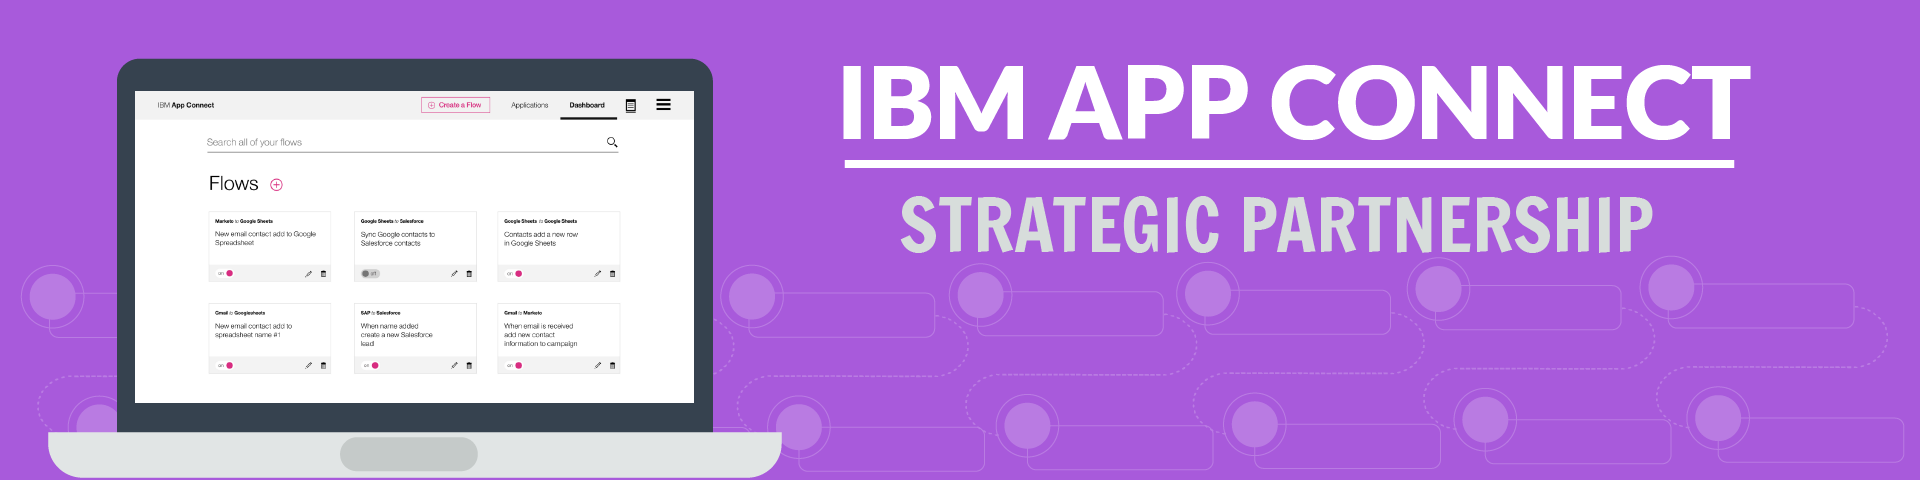 ibm blog post banner -01.png